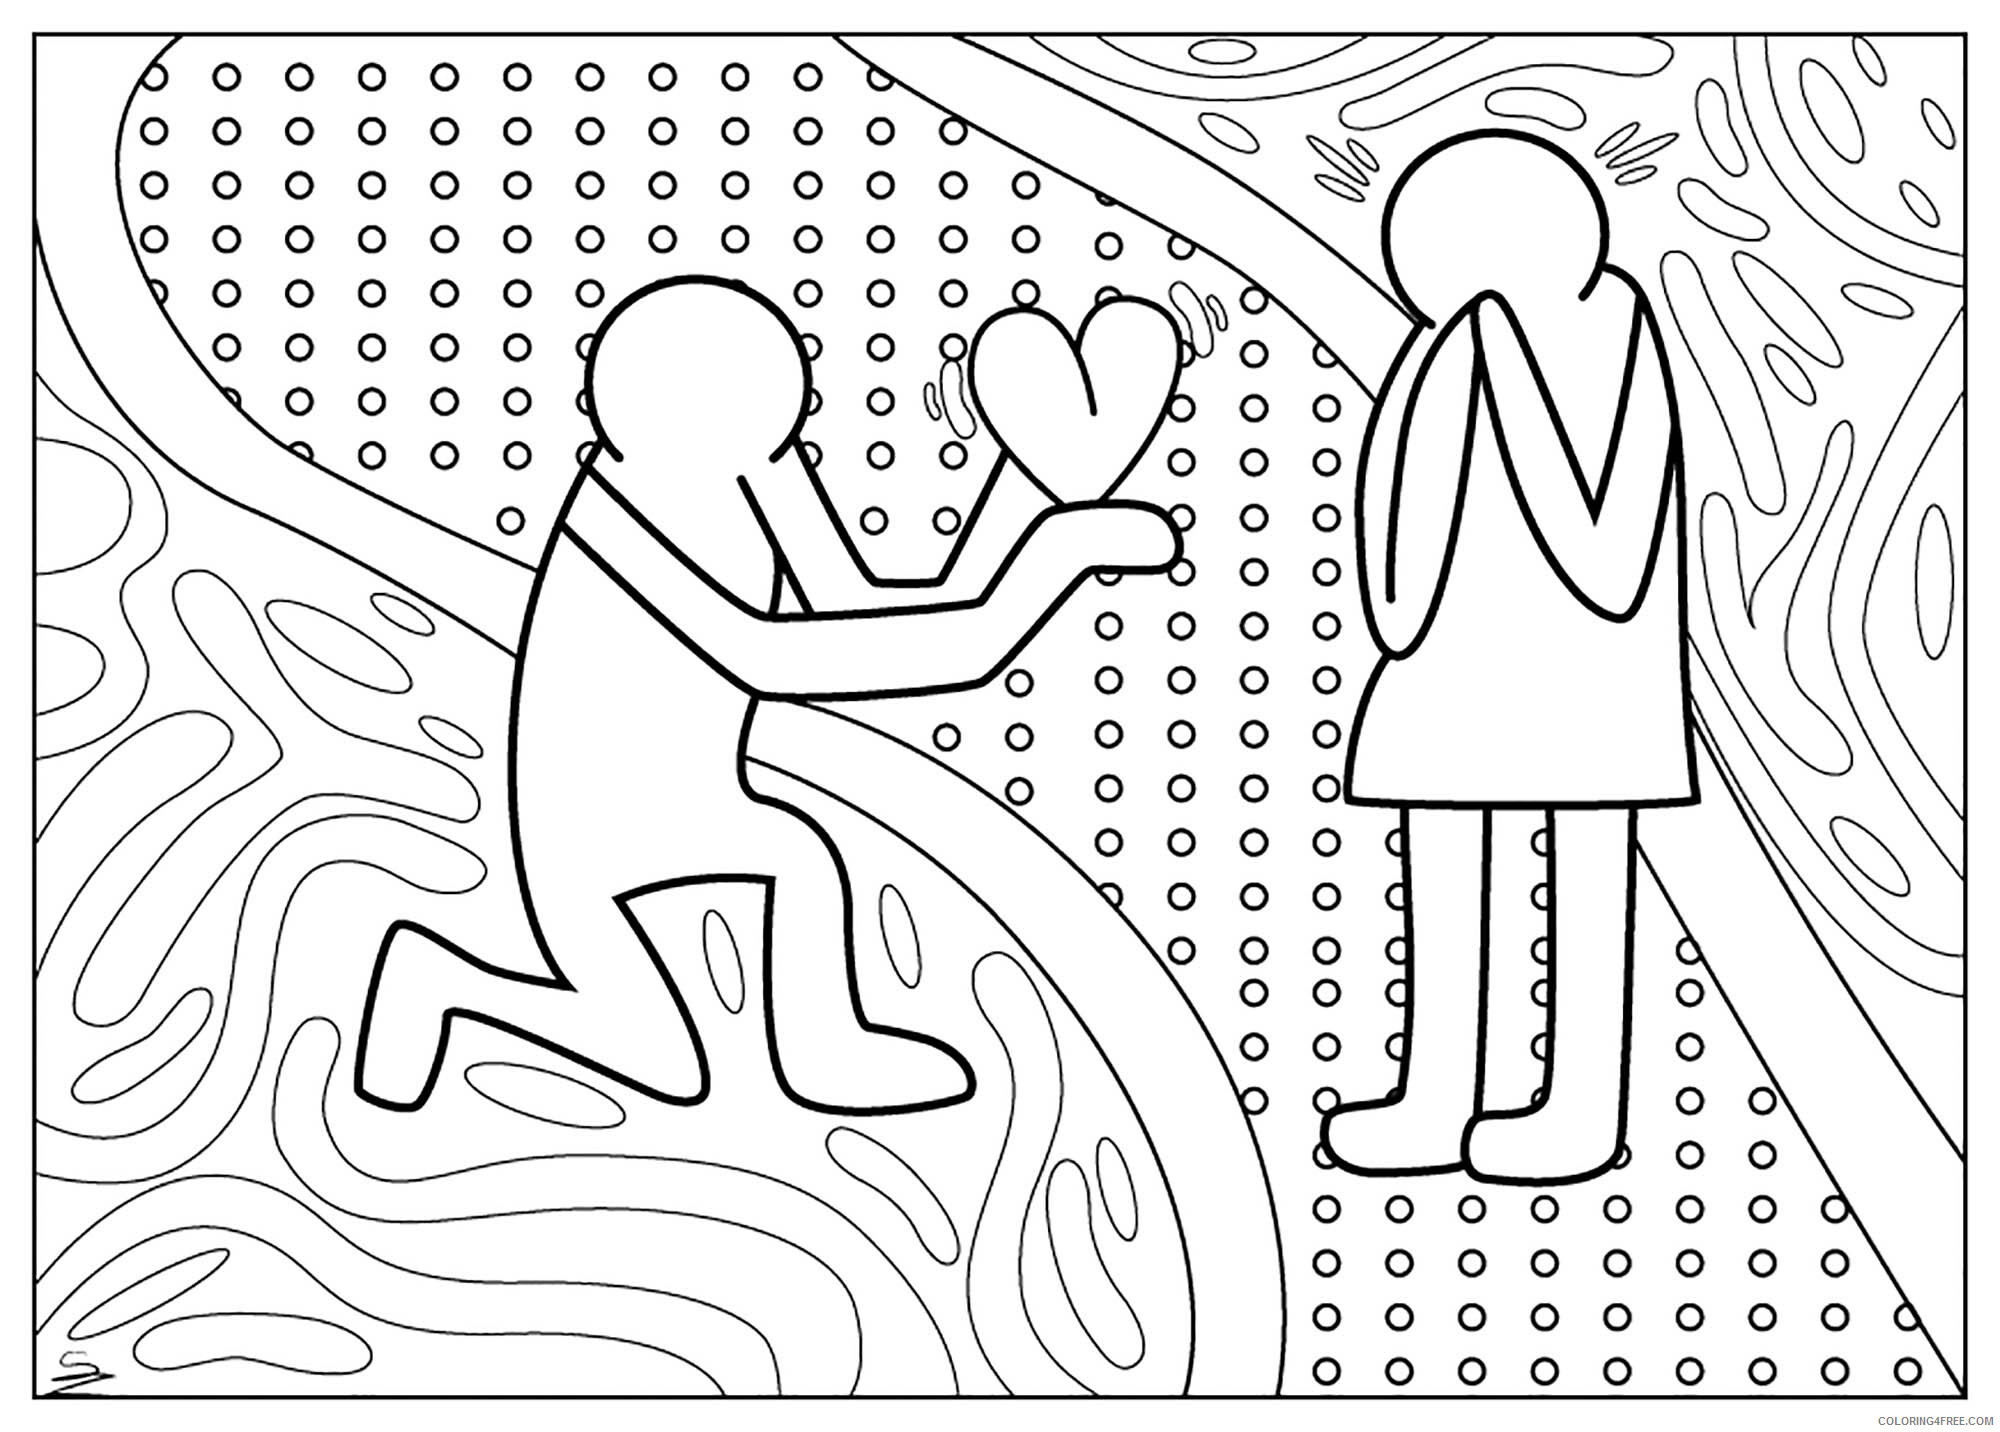 Love Coloring Pages Love Marriage Printable 2021 3937 Coloring4free